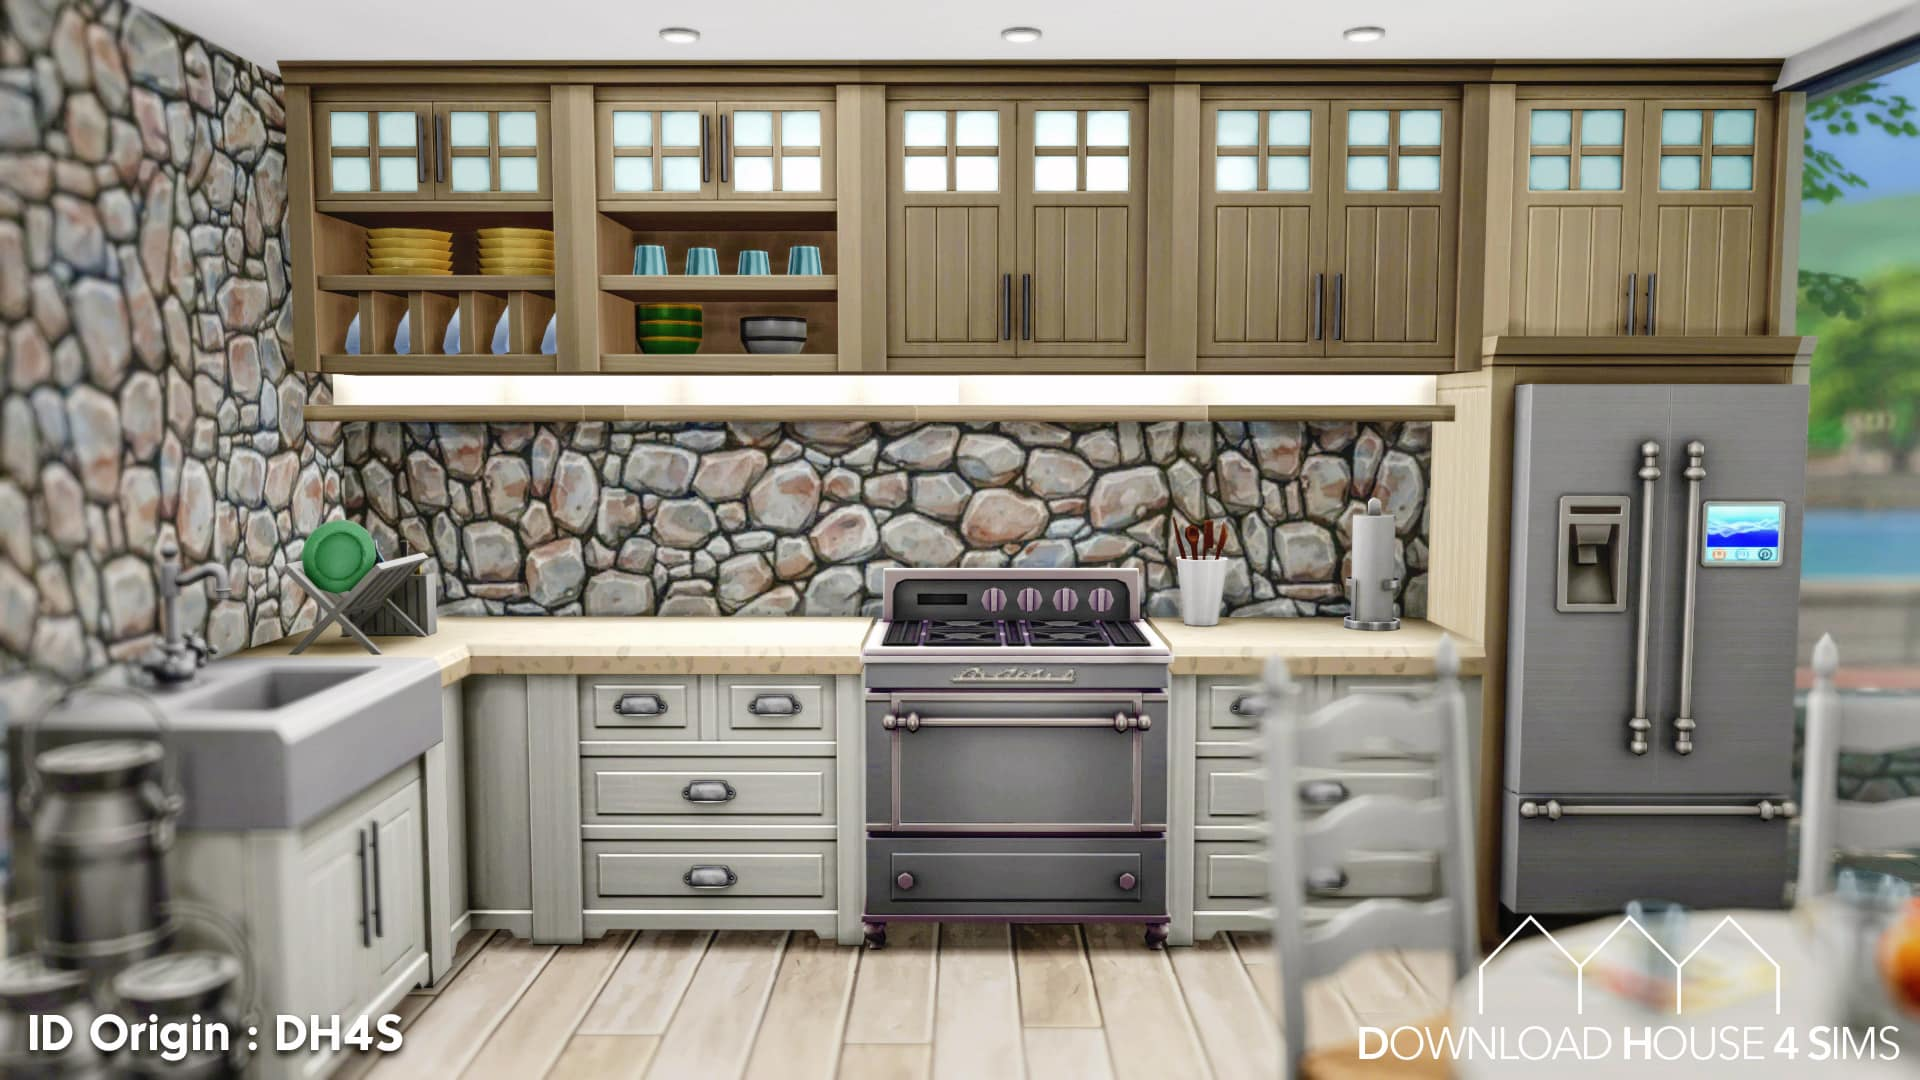 Family-Cottage-Sims-4-DH4S-download-house-4-sims-14